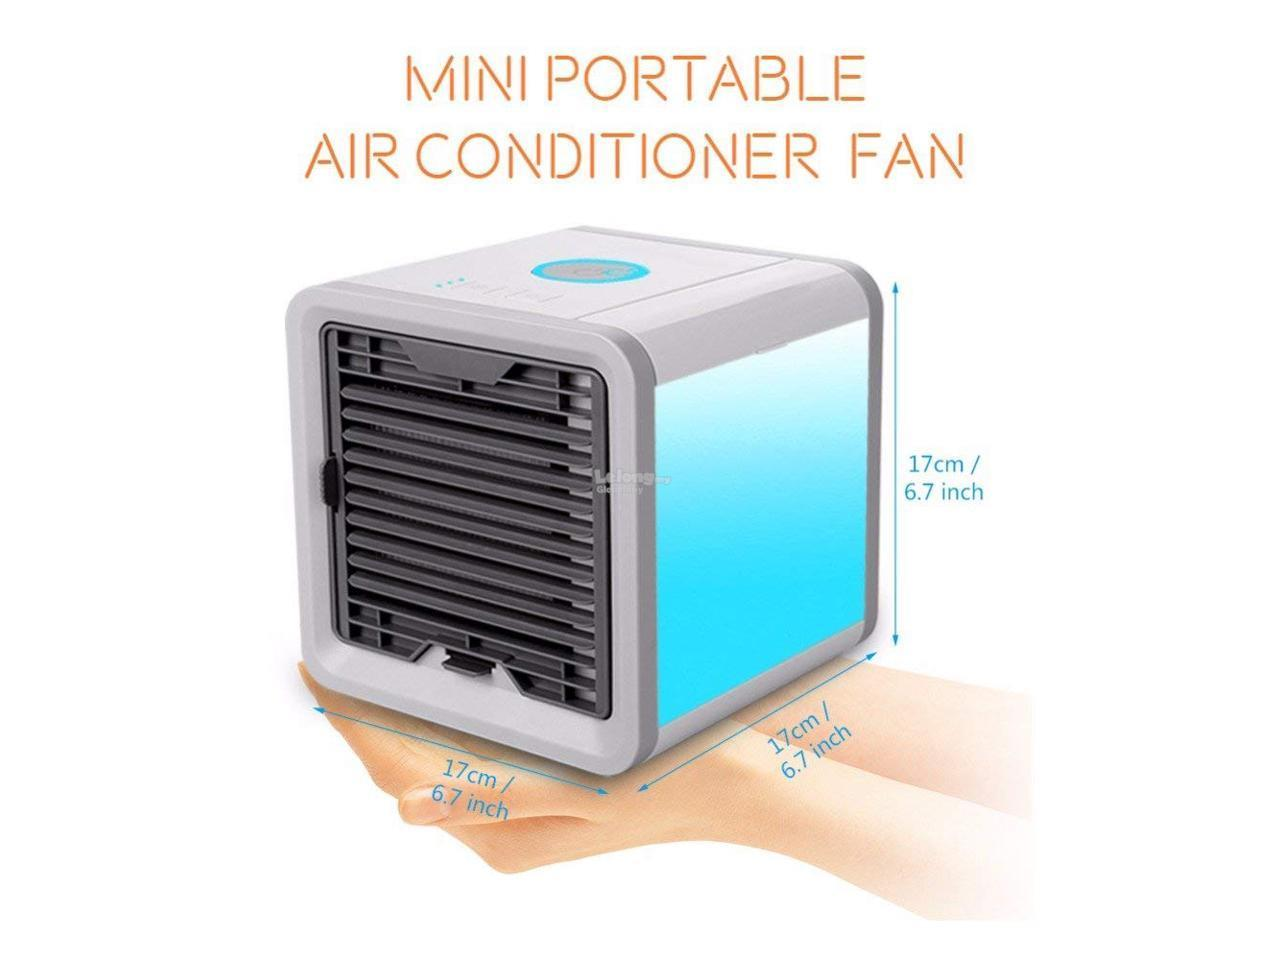 Mini Portable Air Conditioner Cooli End 12 30 2018 5 52 Pm